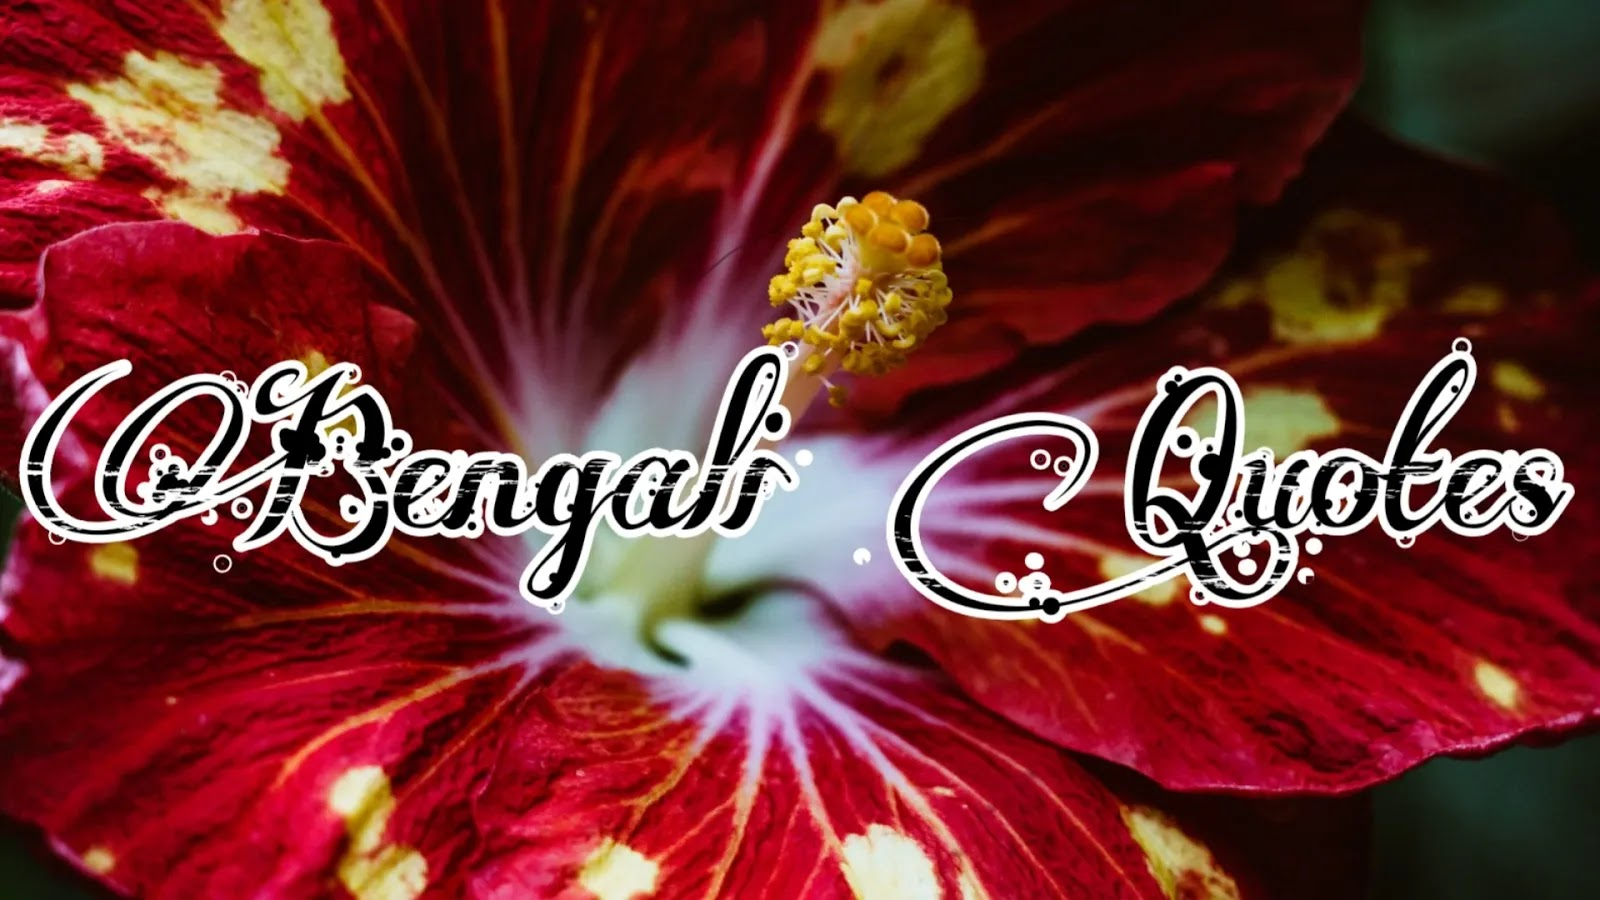 quotes,bangla quotes,quotes in bangla,life changing quotes in bengali,heart touching quotes in bengali